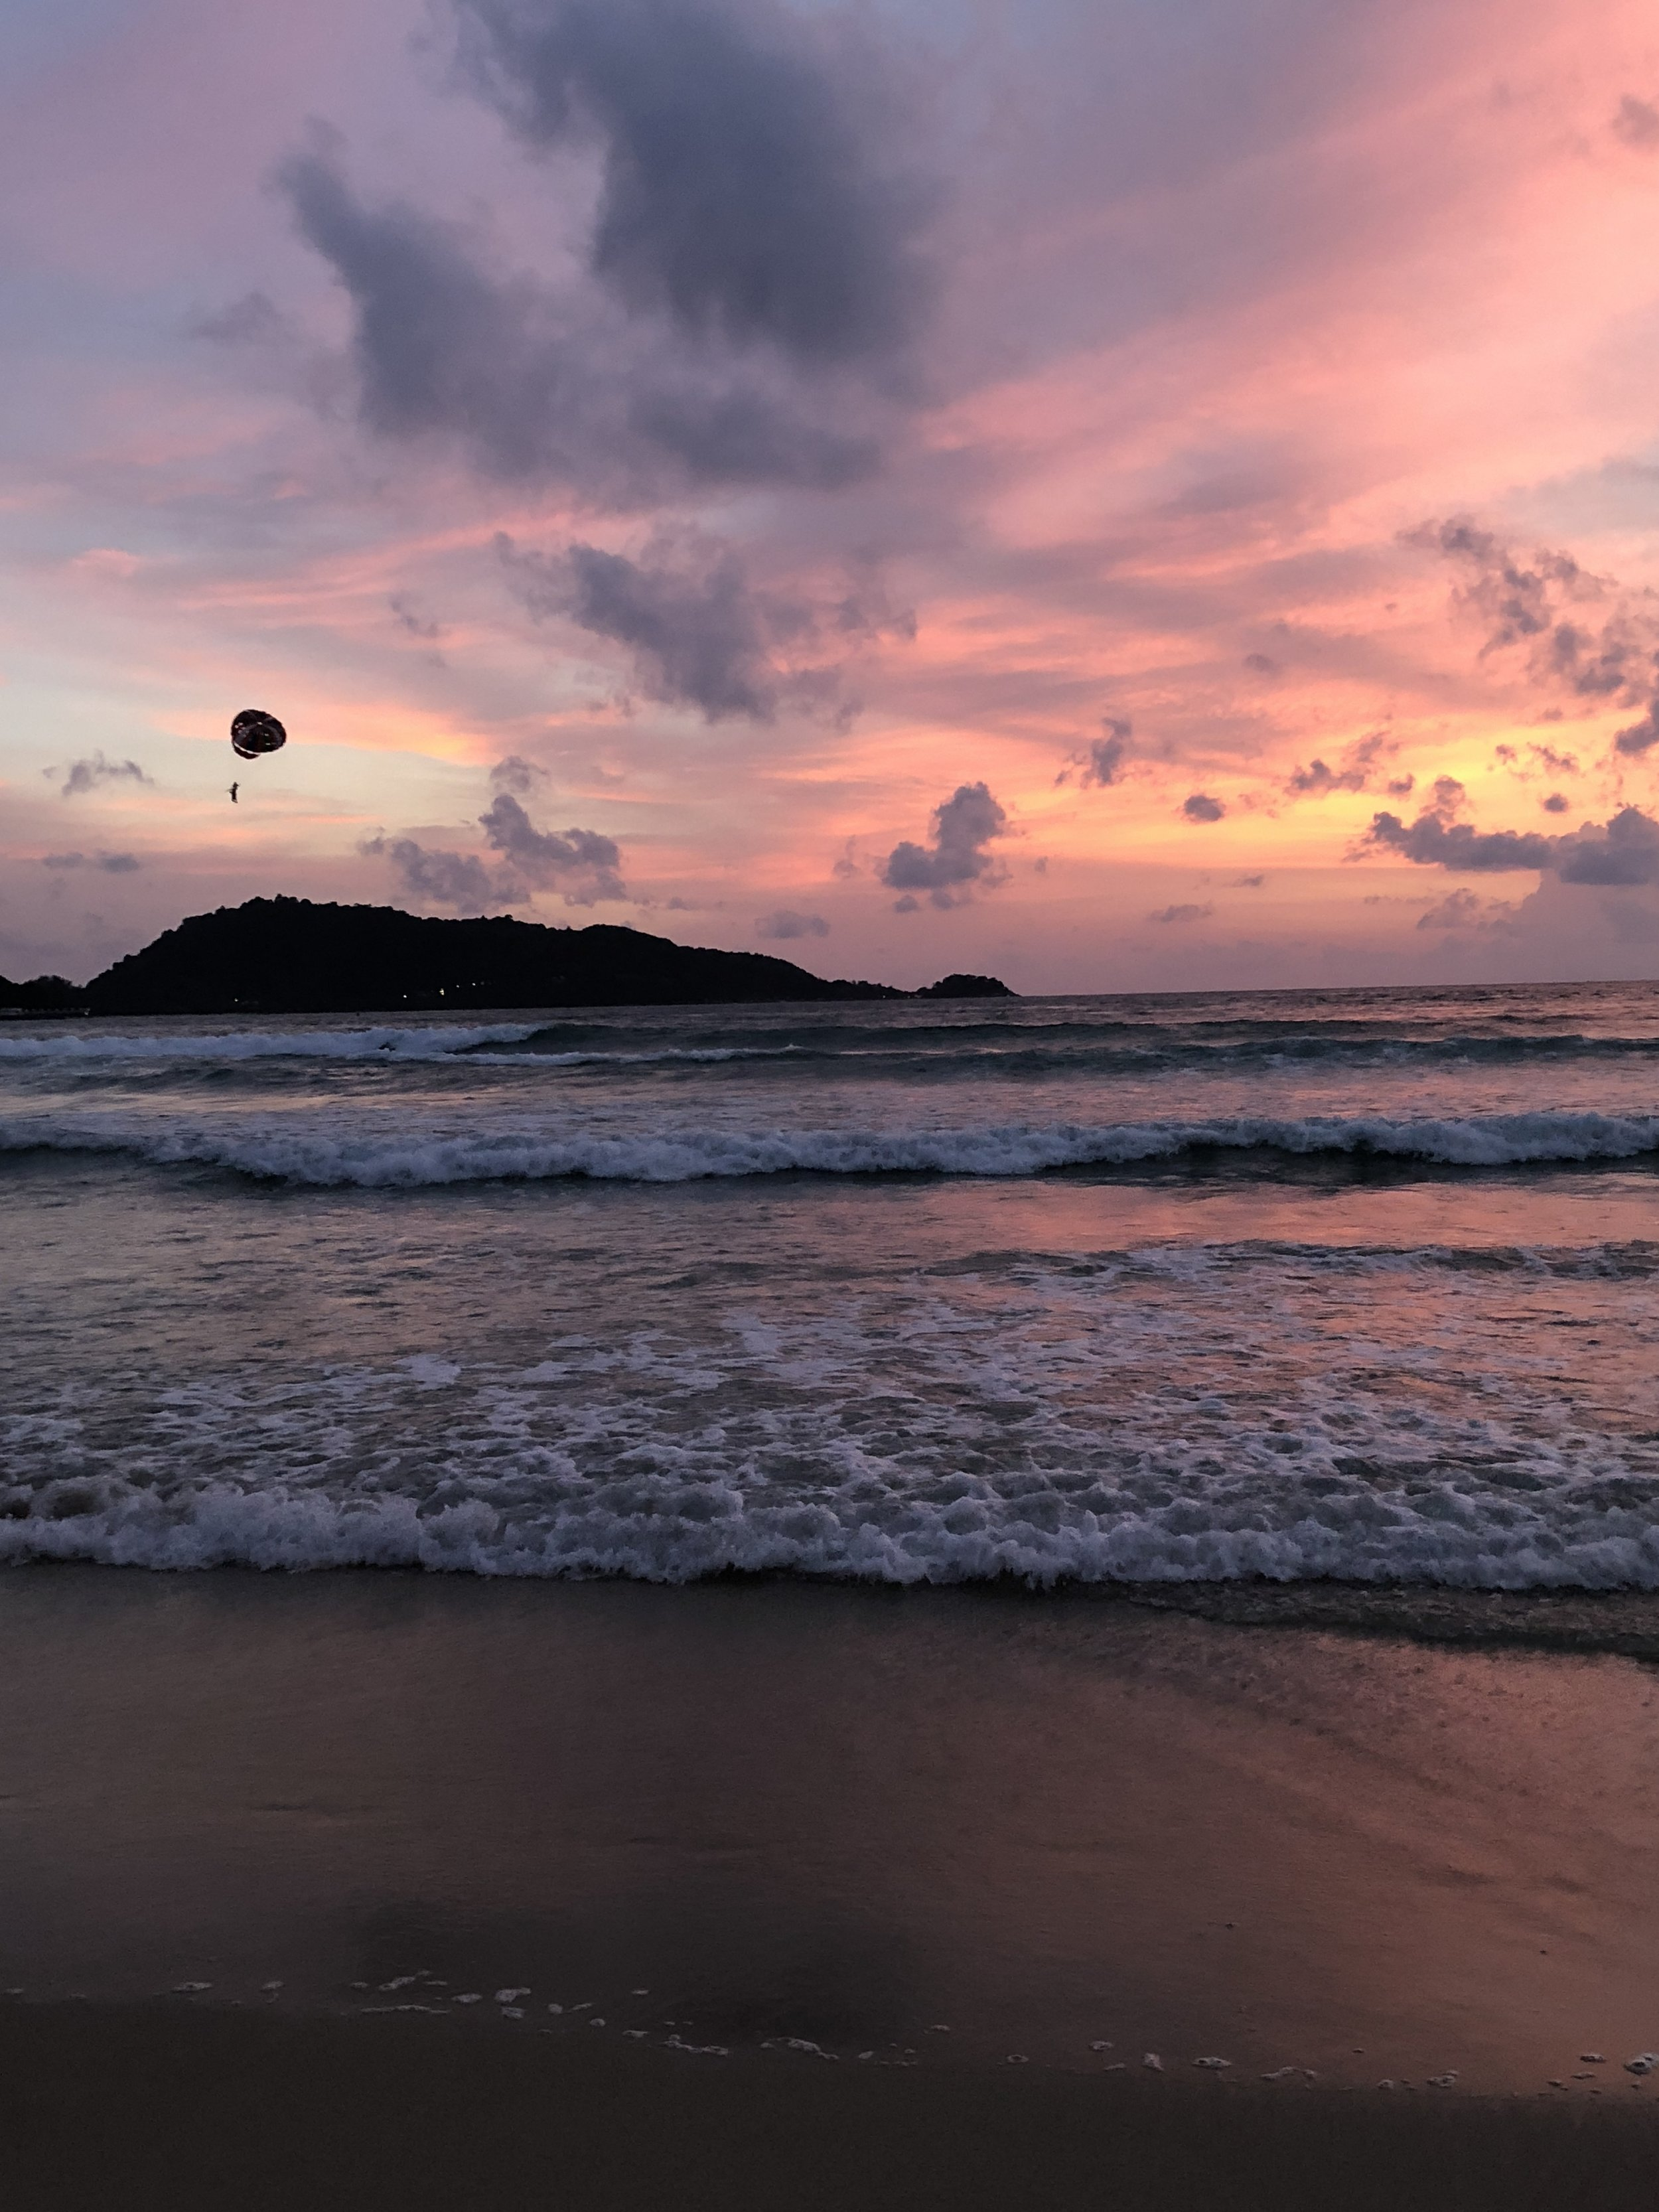 This was the best sunset of our trip and I definitely forgot my camera at the hostel. Rookie.